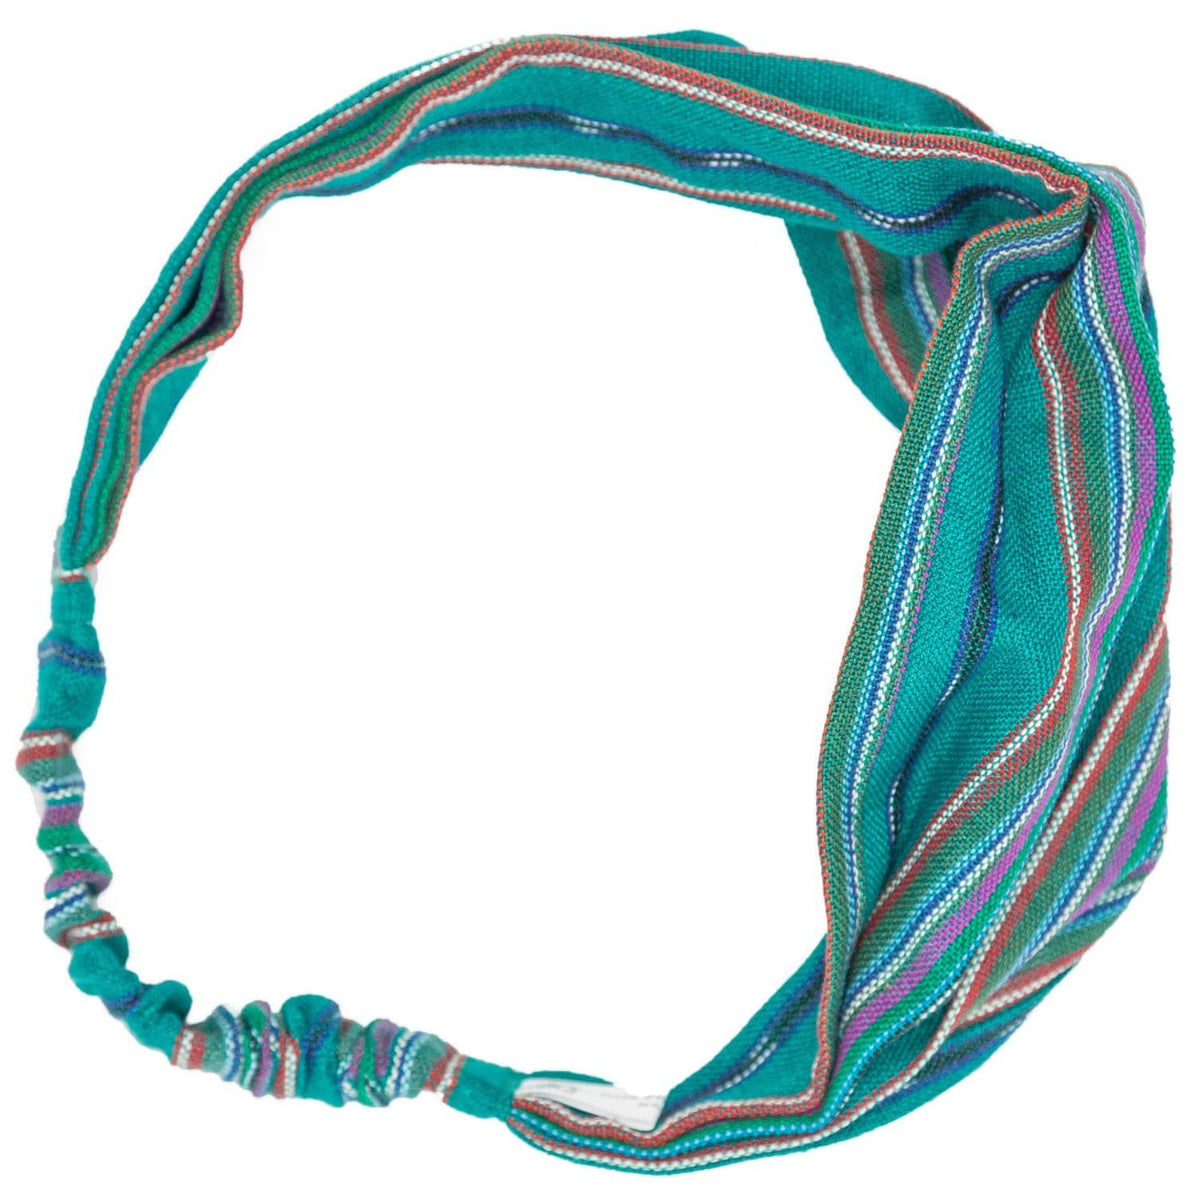 Handmade Boho Headband Dark Teal